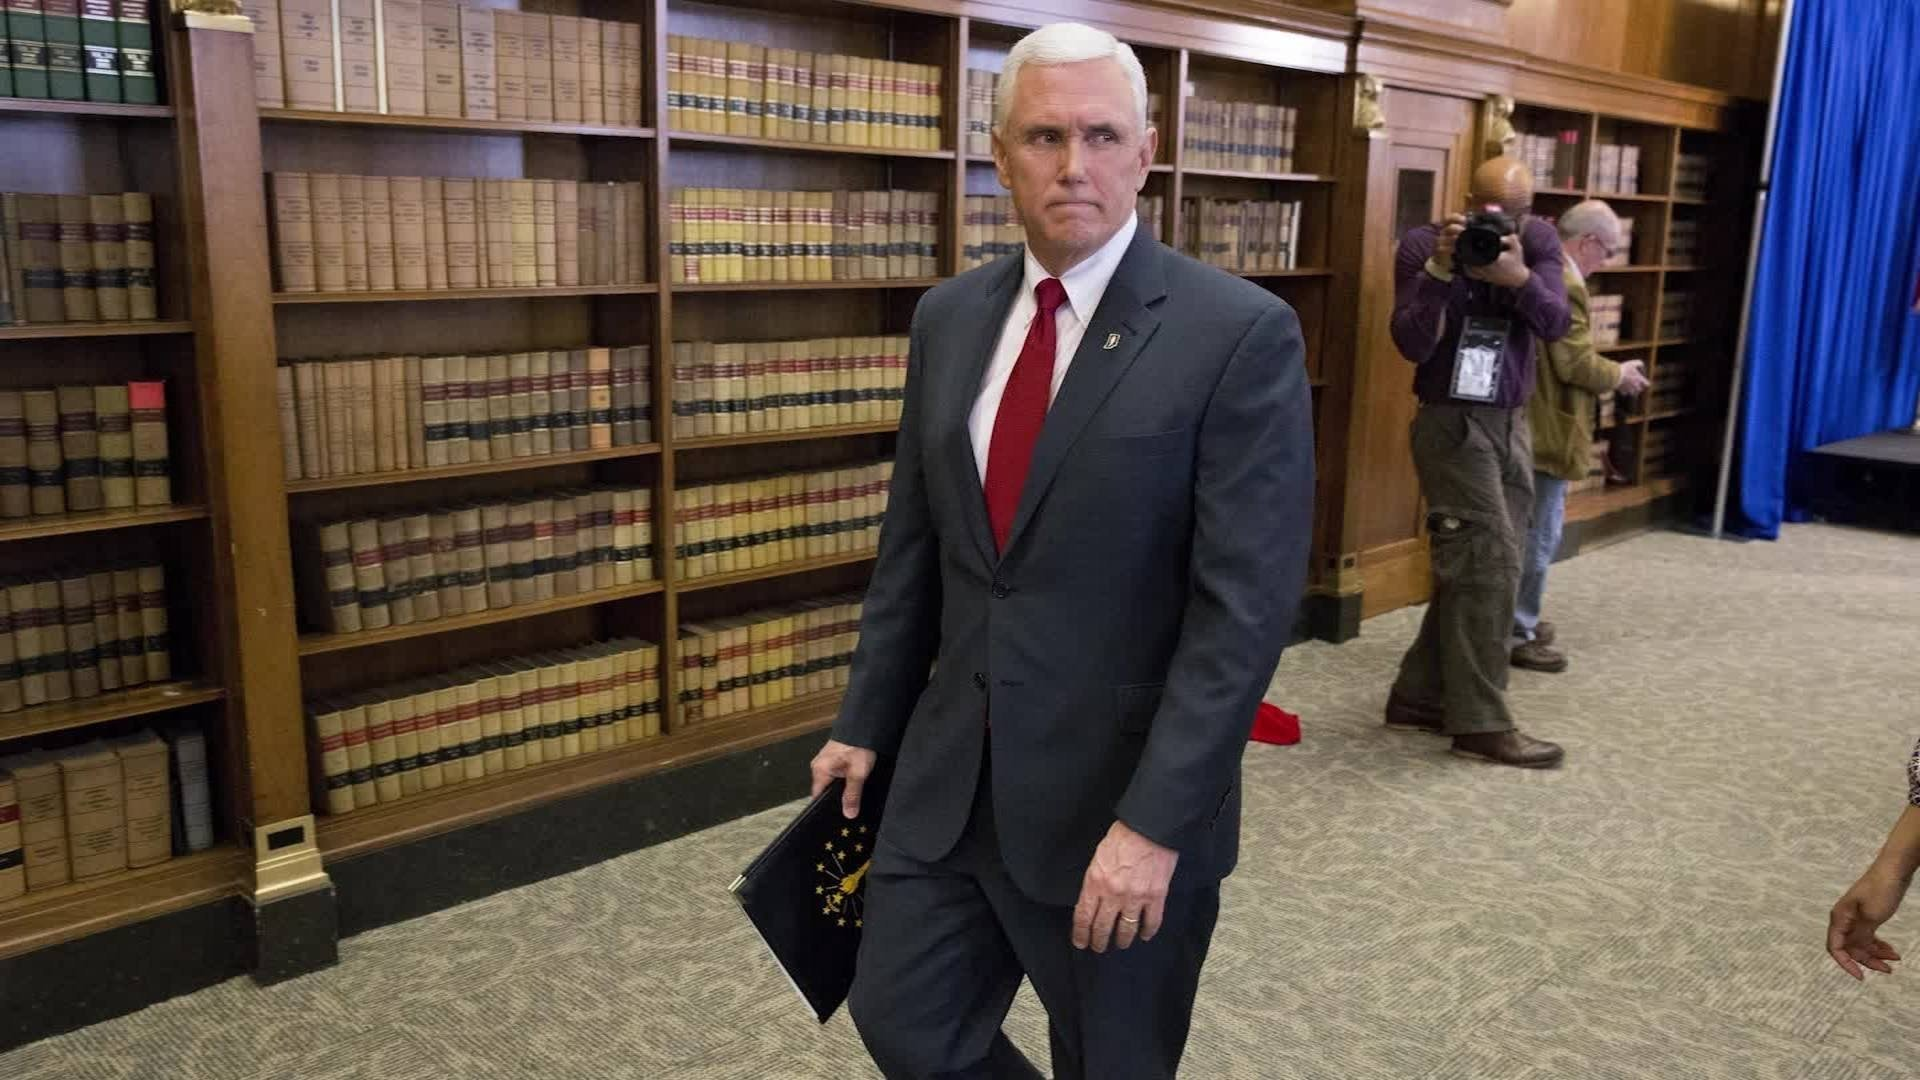 At first glance, a Southern Baptist meeting might seem like a friendly audience for Vice President Mike Pence.